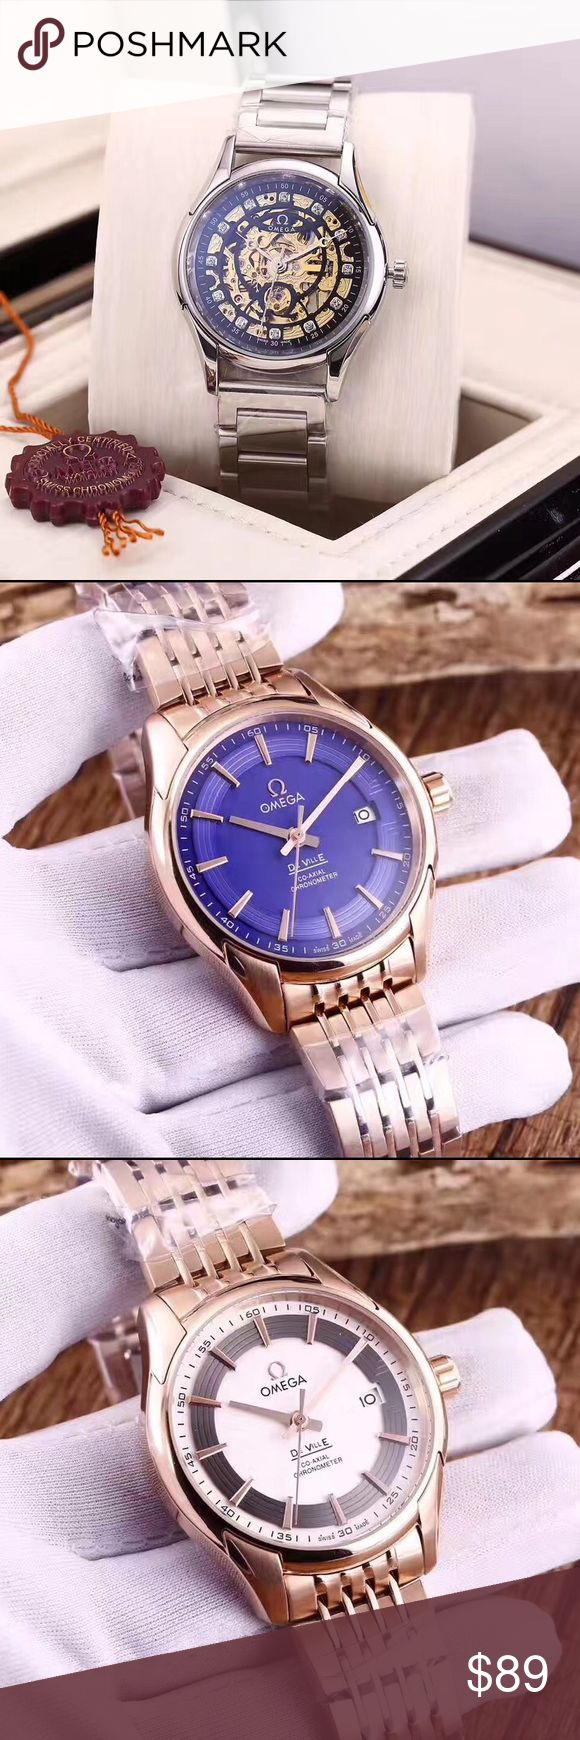 Cheap brand name watches For Men and Women. Shop The Largest Collection brand watches For Both Men and Women.Complimentary Overnight Shipping On All watches Orders. 📱W h a t s A pp: +8 6 1 3 9 5 0 7 2 8 2 9 8 Omega Accessories Watches